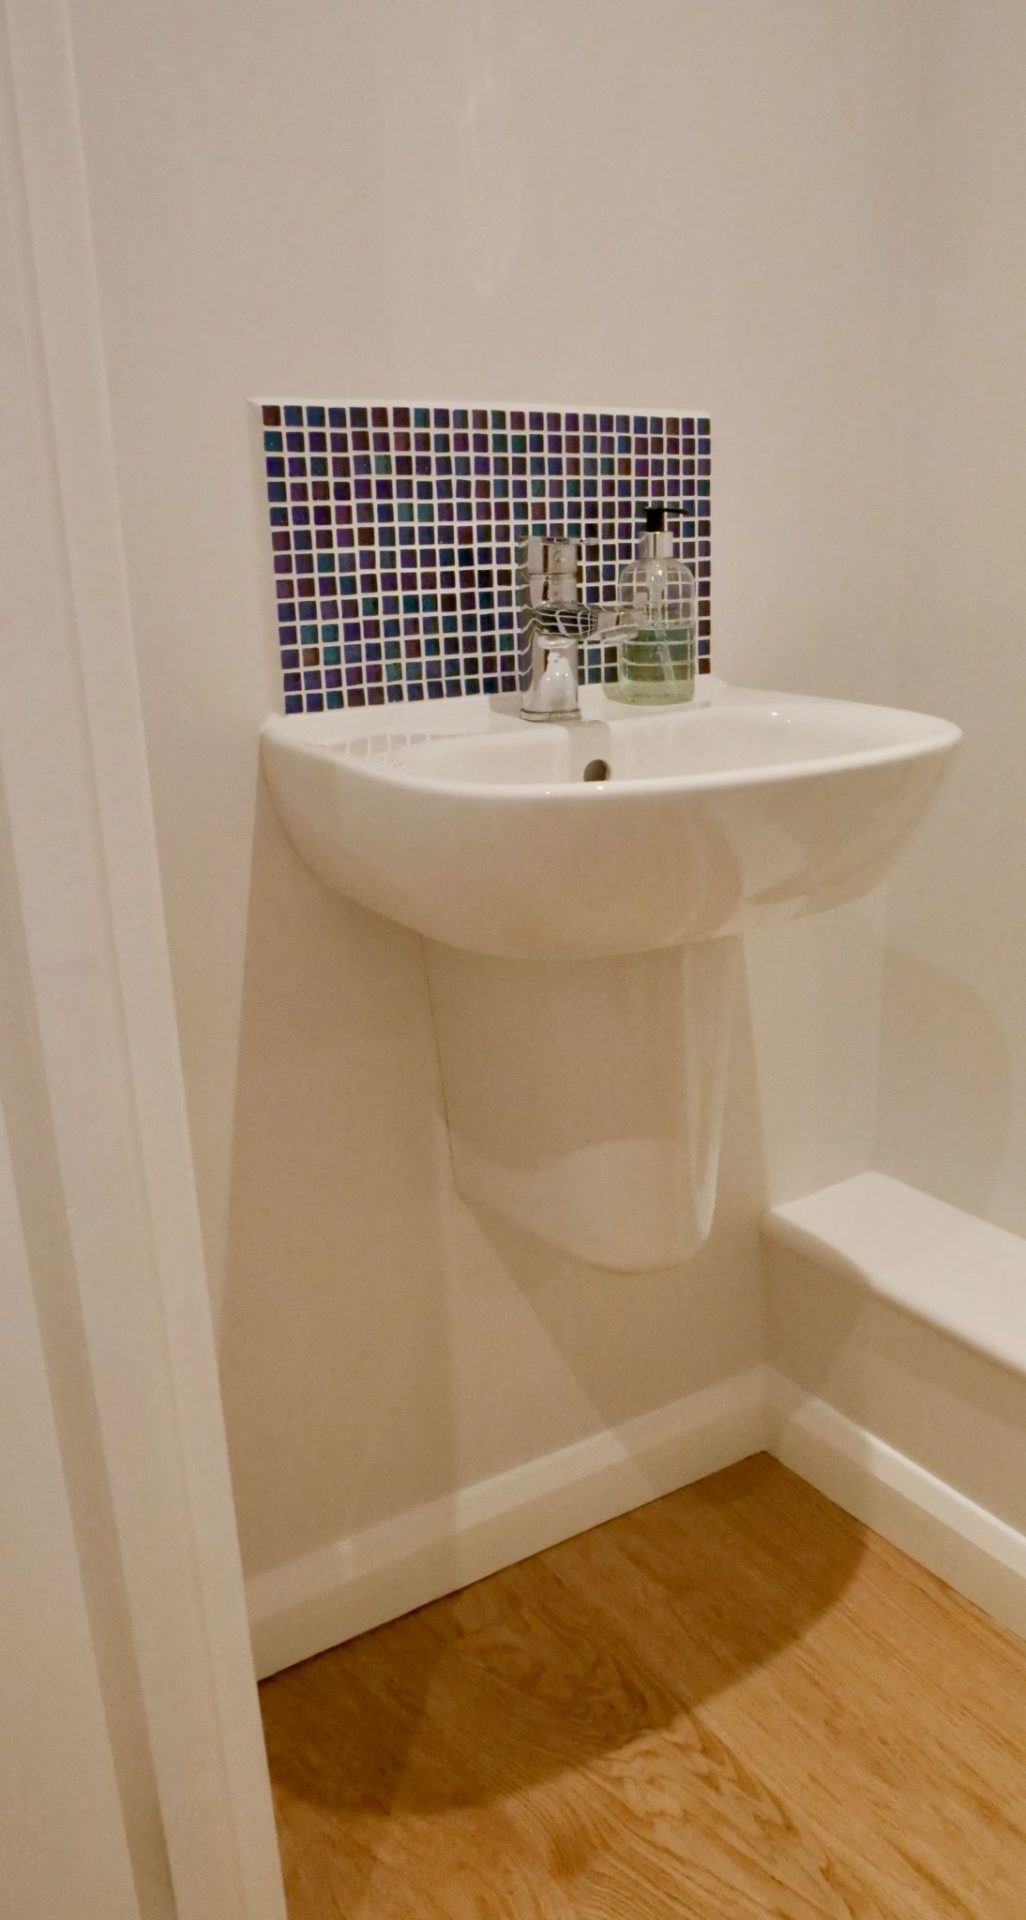 King's Construction | Small Vanity | Ground Floor Extension | London